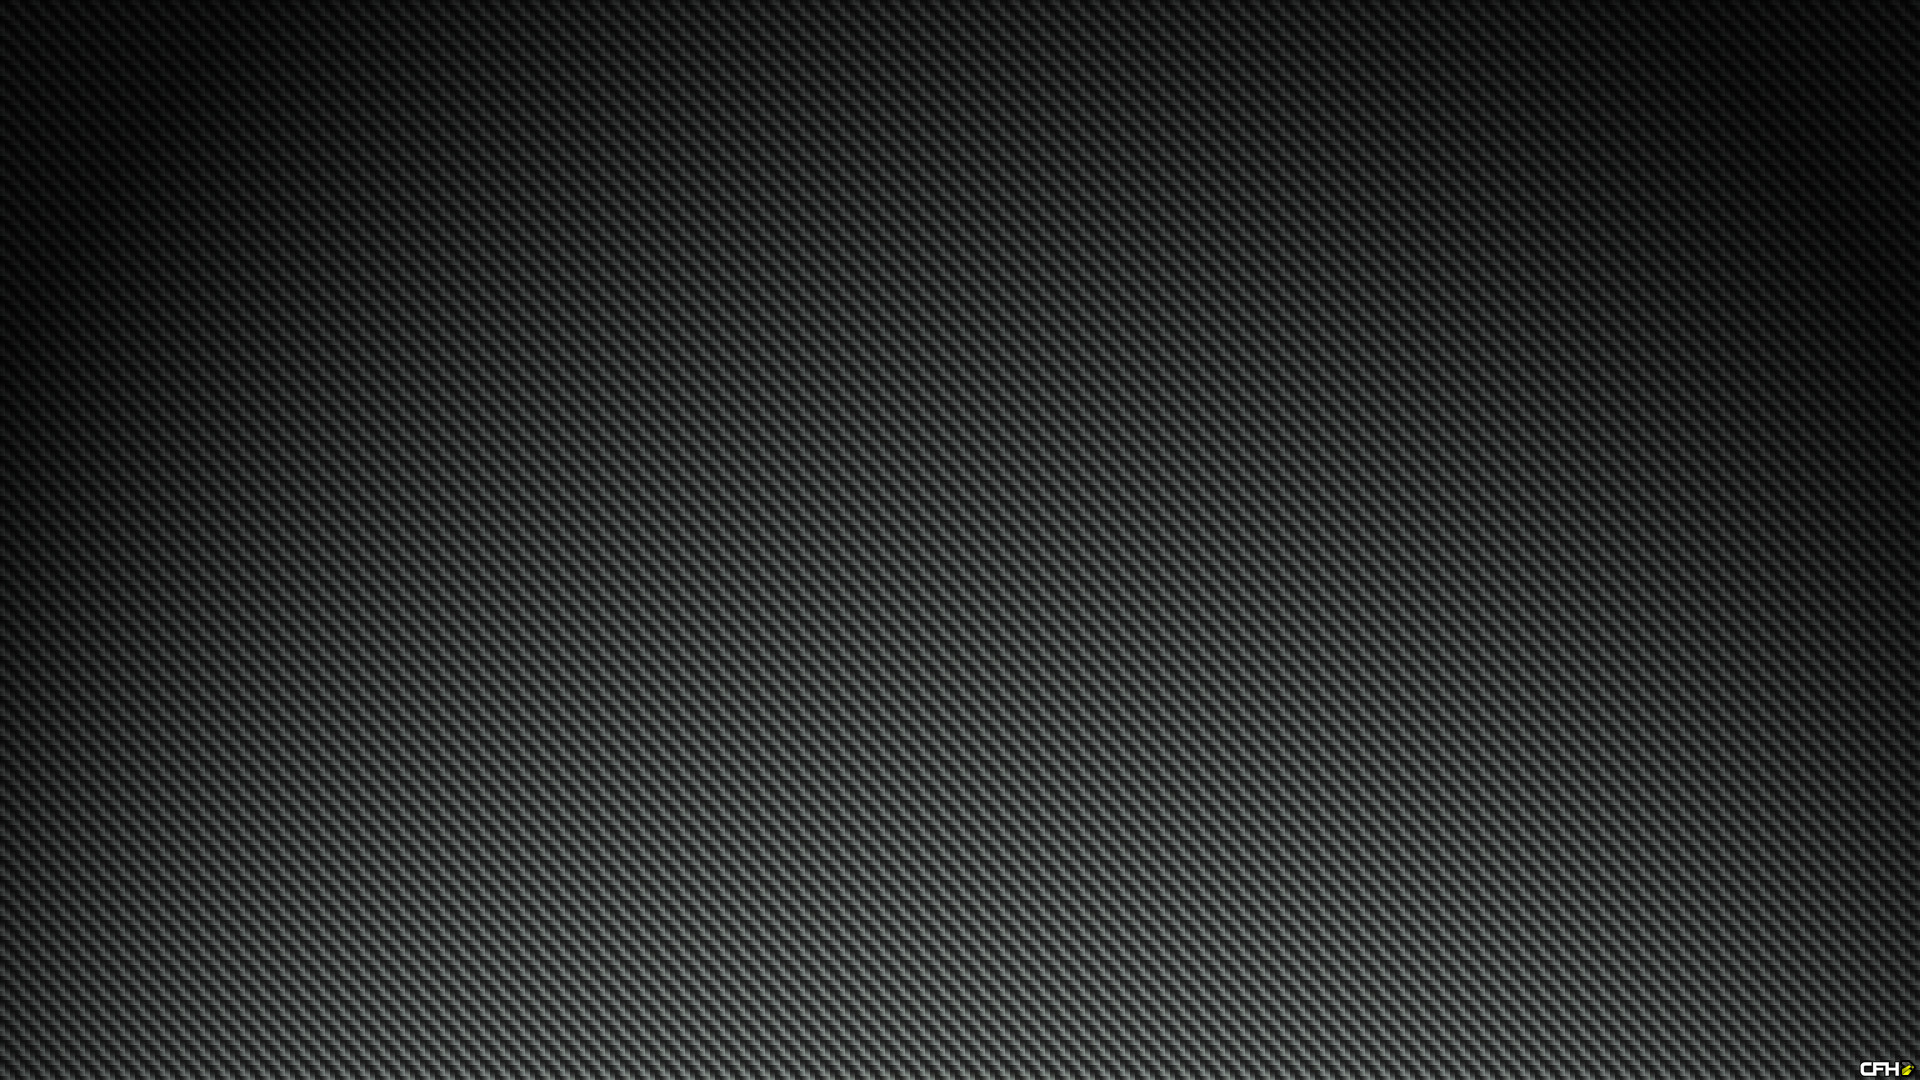 Carbon Fiber Wallpaper 188382